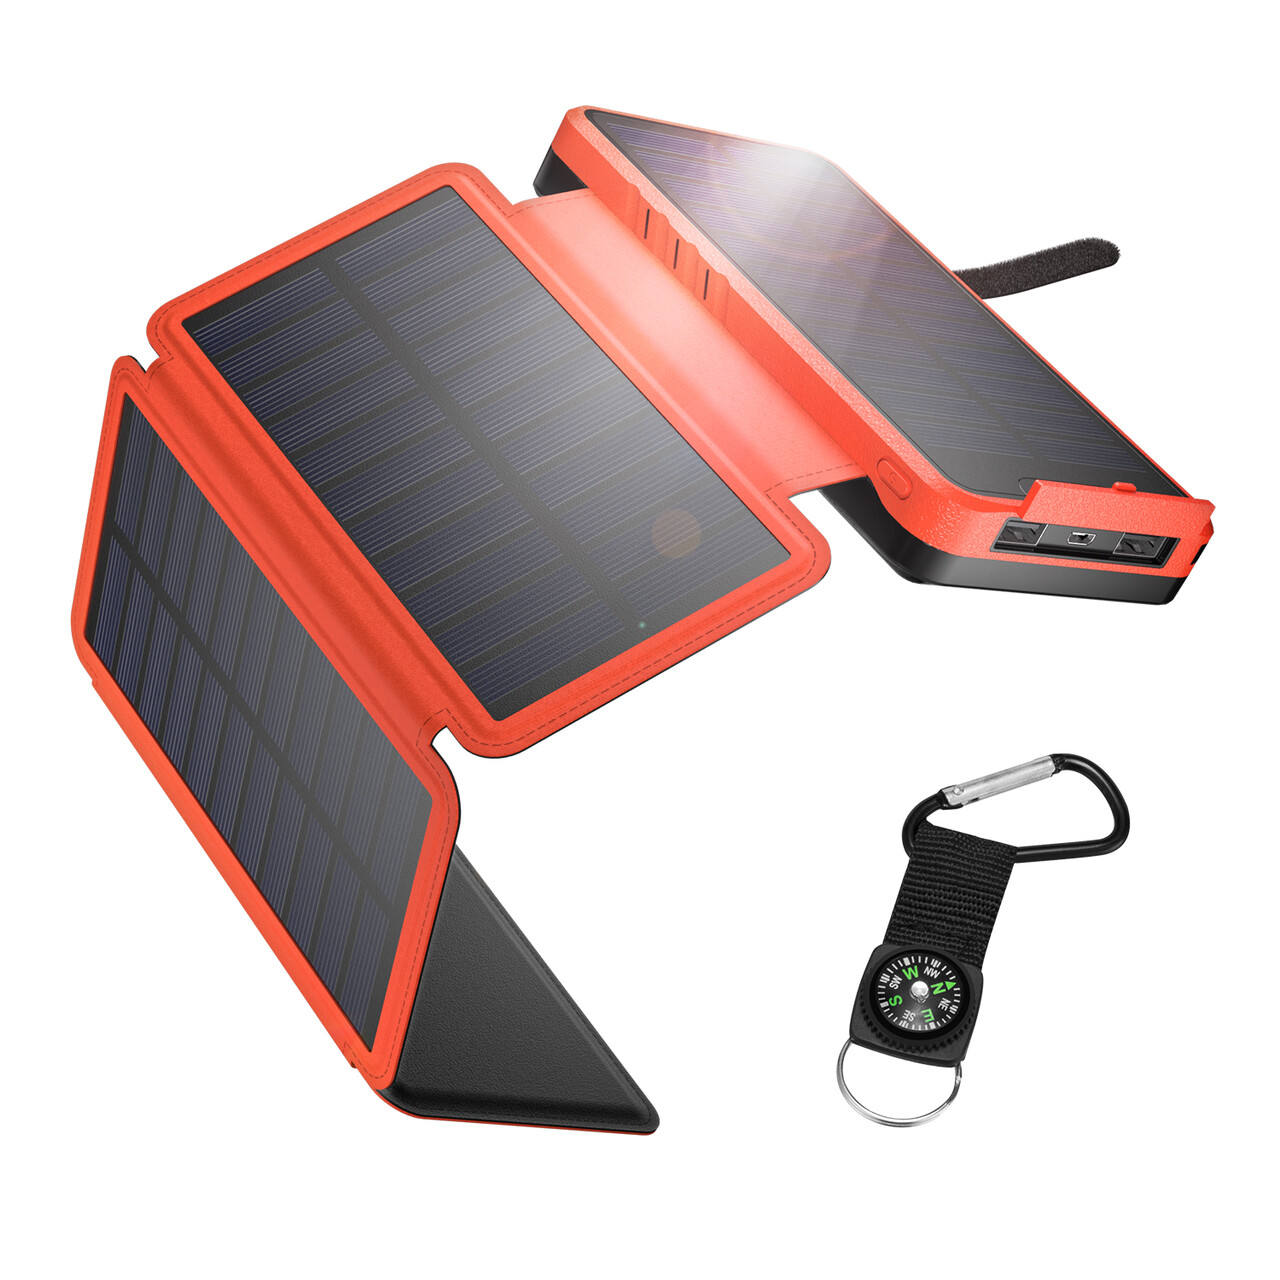 Huge Capacity 26800mah Portable Solar Power bank charger with 4 Foldable solar panels for outdoor activity